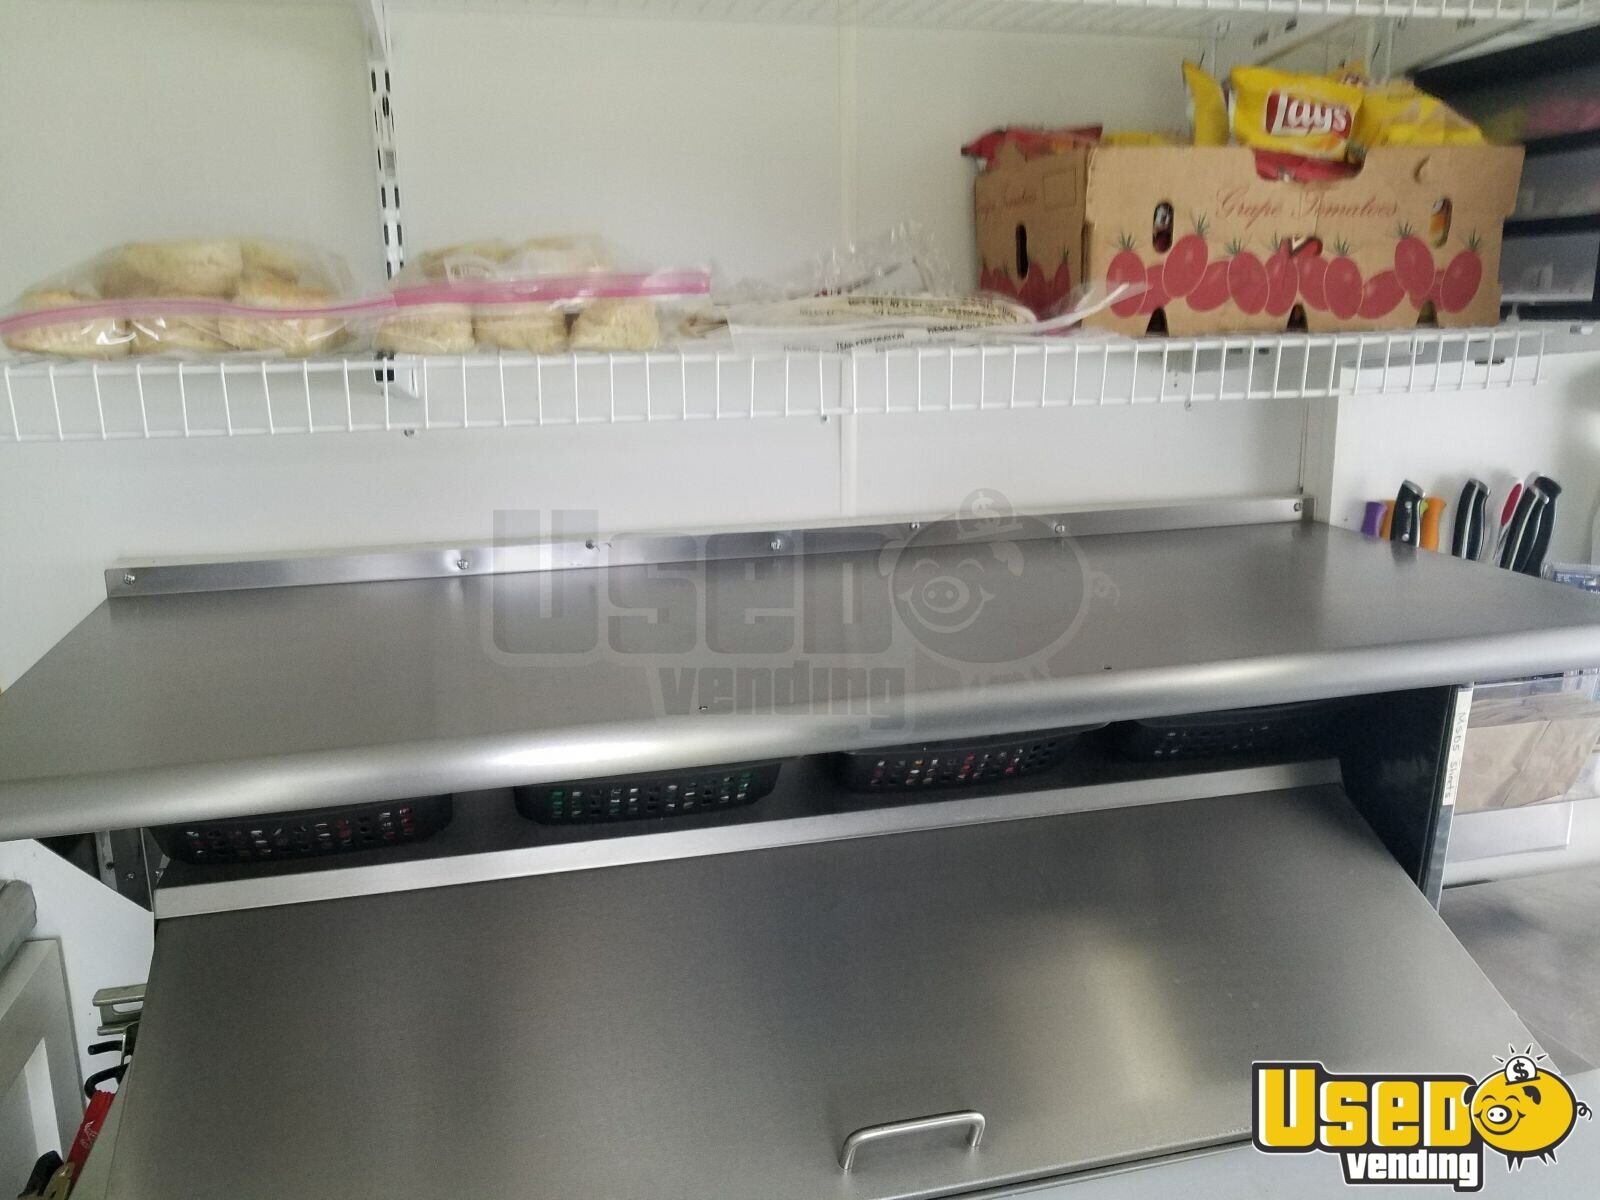 2014 Haulmark All-purpose Food Trailer Triple Sink Connecticut for Sale - 23